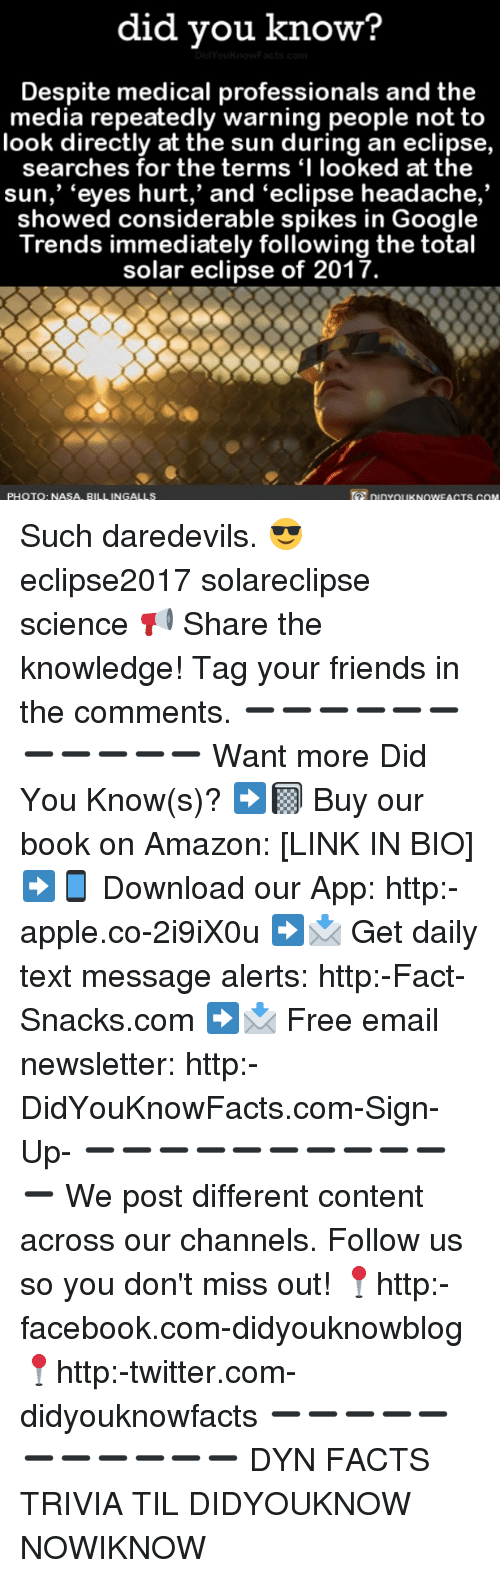 "Amazon, Apple, and Facebook: did vou know?  Despite medical professionals and the  media repeatedly warning people not to  look directly at the sun during an eclipse,  searches for the terms 'I looked at the  sun,""eyes hurt,' and 'eclipse headache.  showed considerable spikes in Google  Trends immediately following the total  solar eclipse of 2017.  PHOTO: NASA, BILL INGALLS  DIDYOUKNOWEAGTS COM Such daredevils. 😎 eclipse2017 solareclipse science 📢 Share the knowledge! Tag your friends in the comments. ➖➖➖➖➖➖➖➖➖➖➖ Want more Did You Know(s)? ➡📓 Buy our book on Amazon: [LINK IN BIO] ➡📱 Download our App: http:-apple.co-2i9iX0u ➡📩 Get daily text message alerts: http:-Fact-Snacks.com ➡📩 Free email newsletter: http:-DidYouKnowFacts.com-Sign-Up- ➖➖➖➖➖➖➖➖➖➖➖ We post different content across our channels. Follow us so you don't miss out! 📍http:-facebook.com-didyouknowblog 📍http:-twitter.com-didyouknowfacts ➖➖➖➖➖➖➖➖➖➖➖ DYN FACTS TRIVIA TIL DIDYOUKNOW NOWIKNOW"